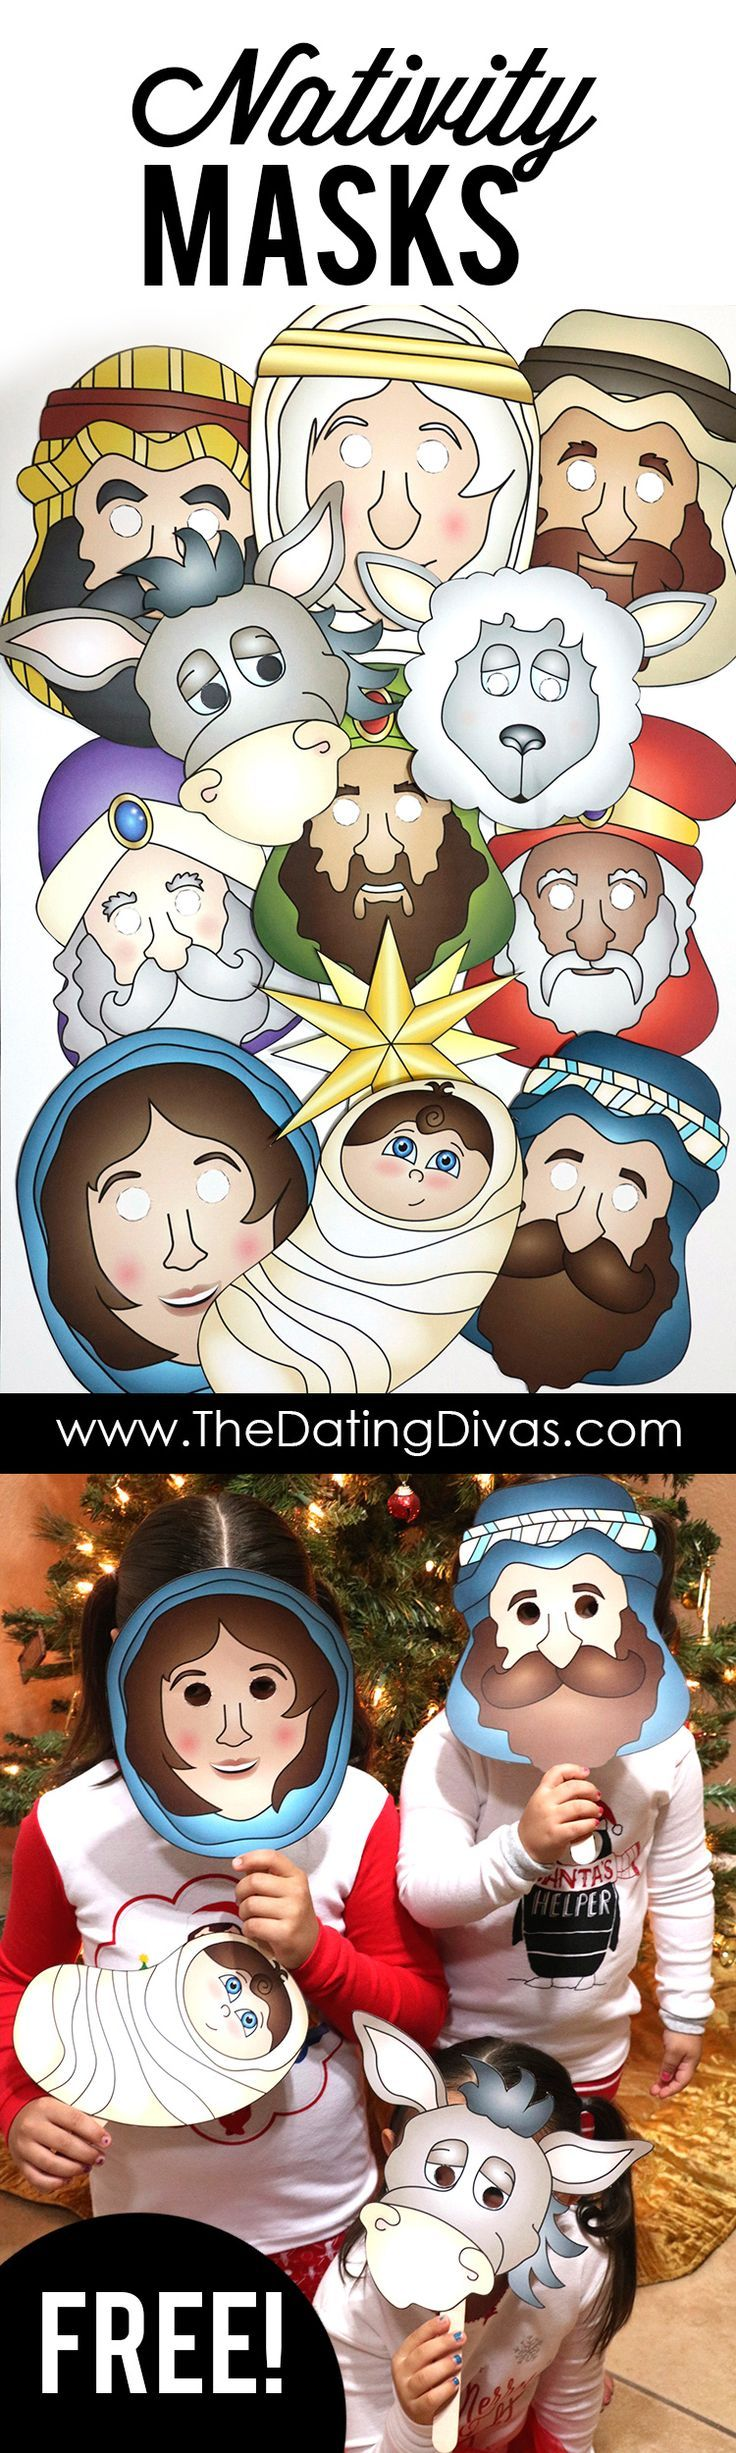 Free printable nativity masks to act out the nativity story as a family on Christmas Eve. This is my favorite family Christmas tradition!! And this post has 15 PAGES of nativity masks and props!